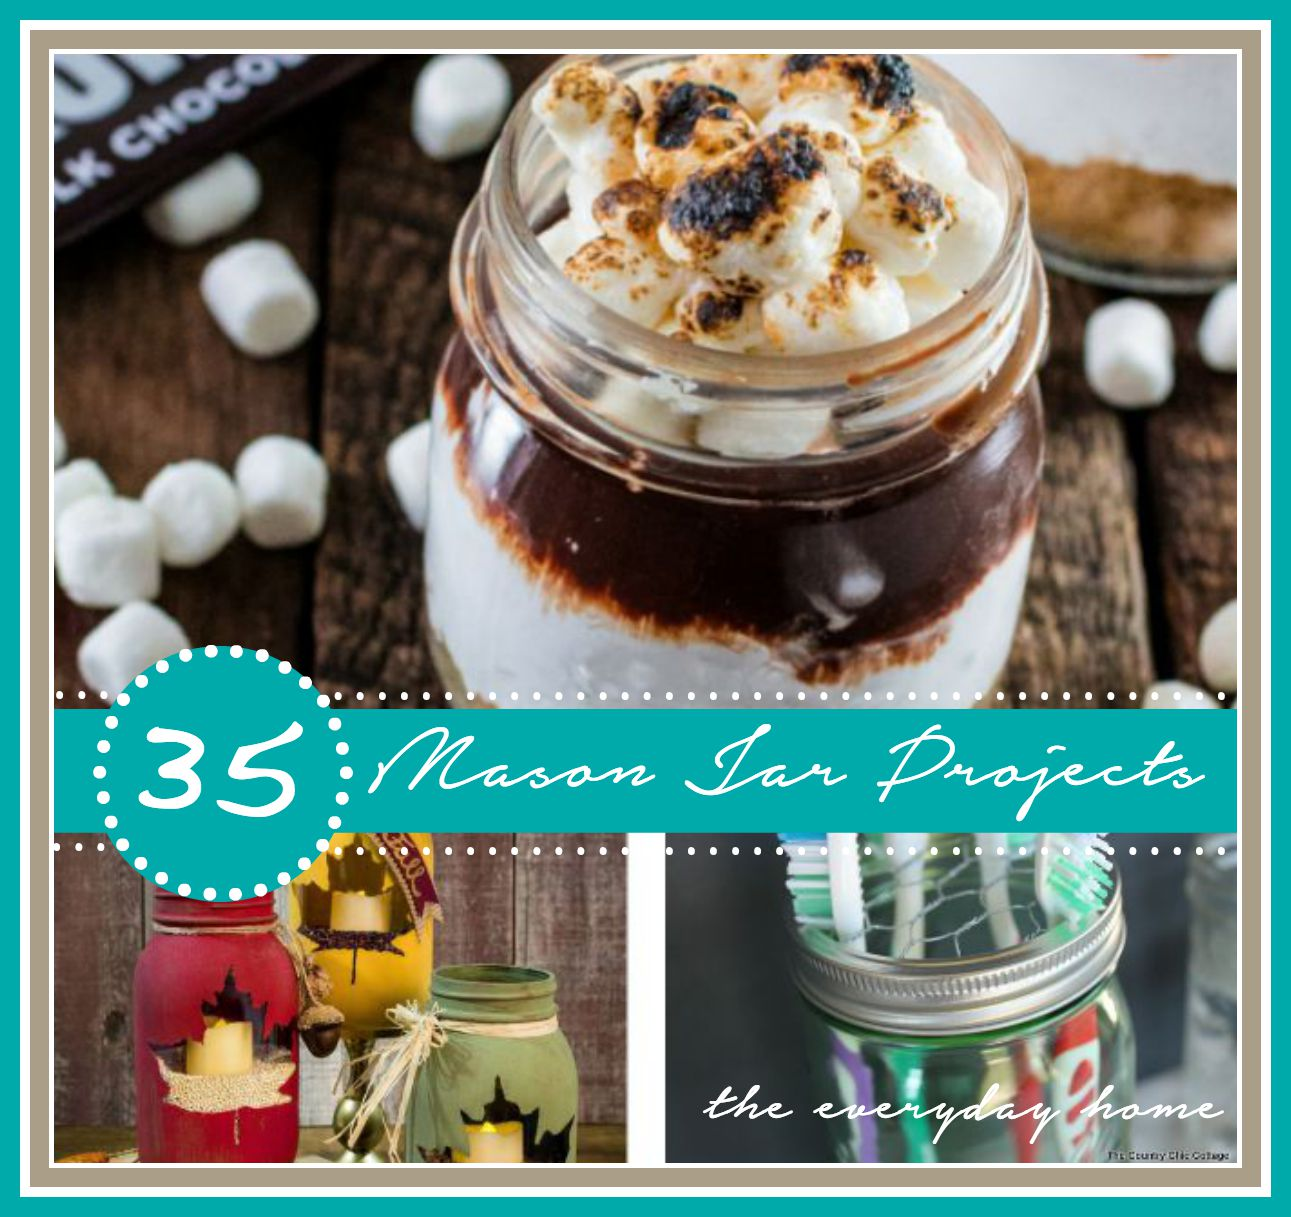 35 diy mason jar projects the everyday home for Projects to do with mason jars